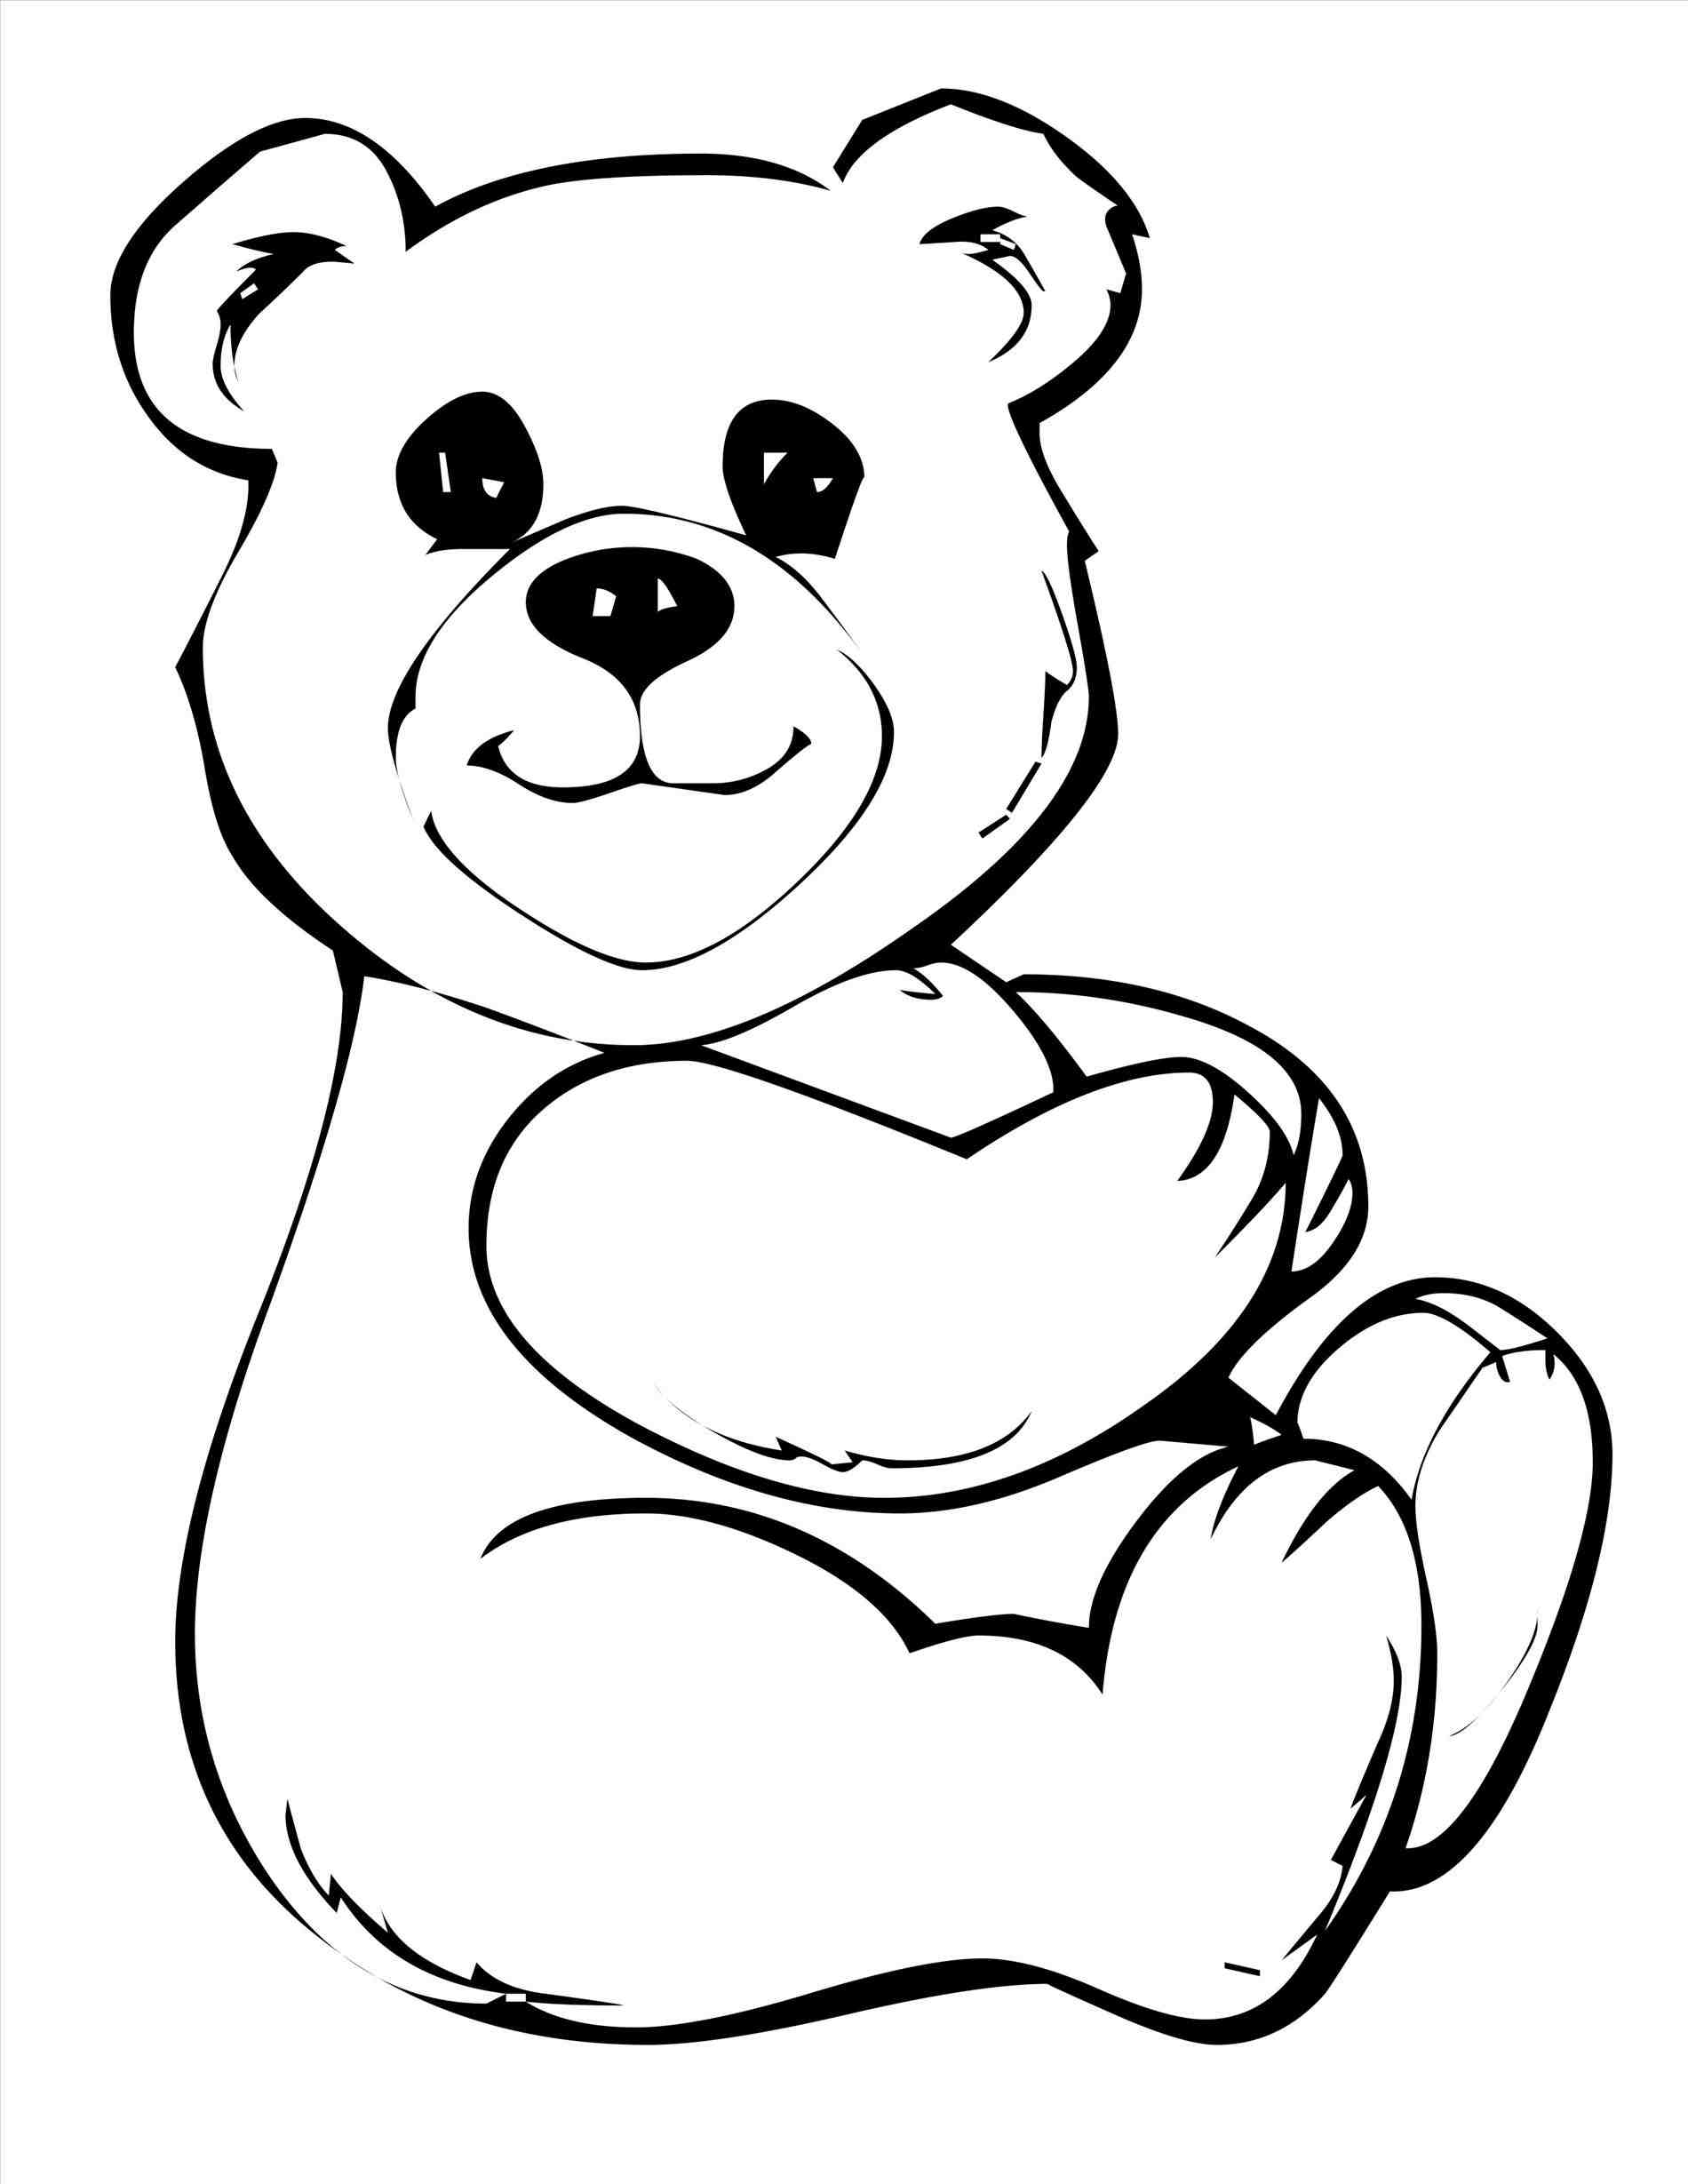 Teddy Bear Face Drawing at GetDrawings.com | Free for personal use ...